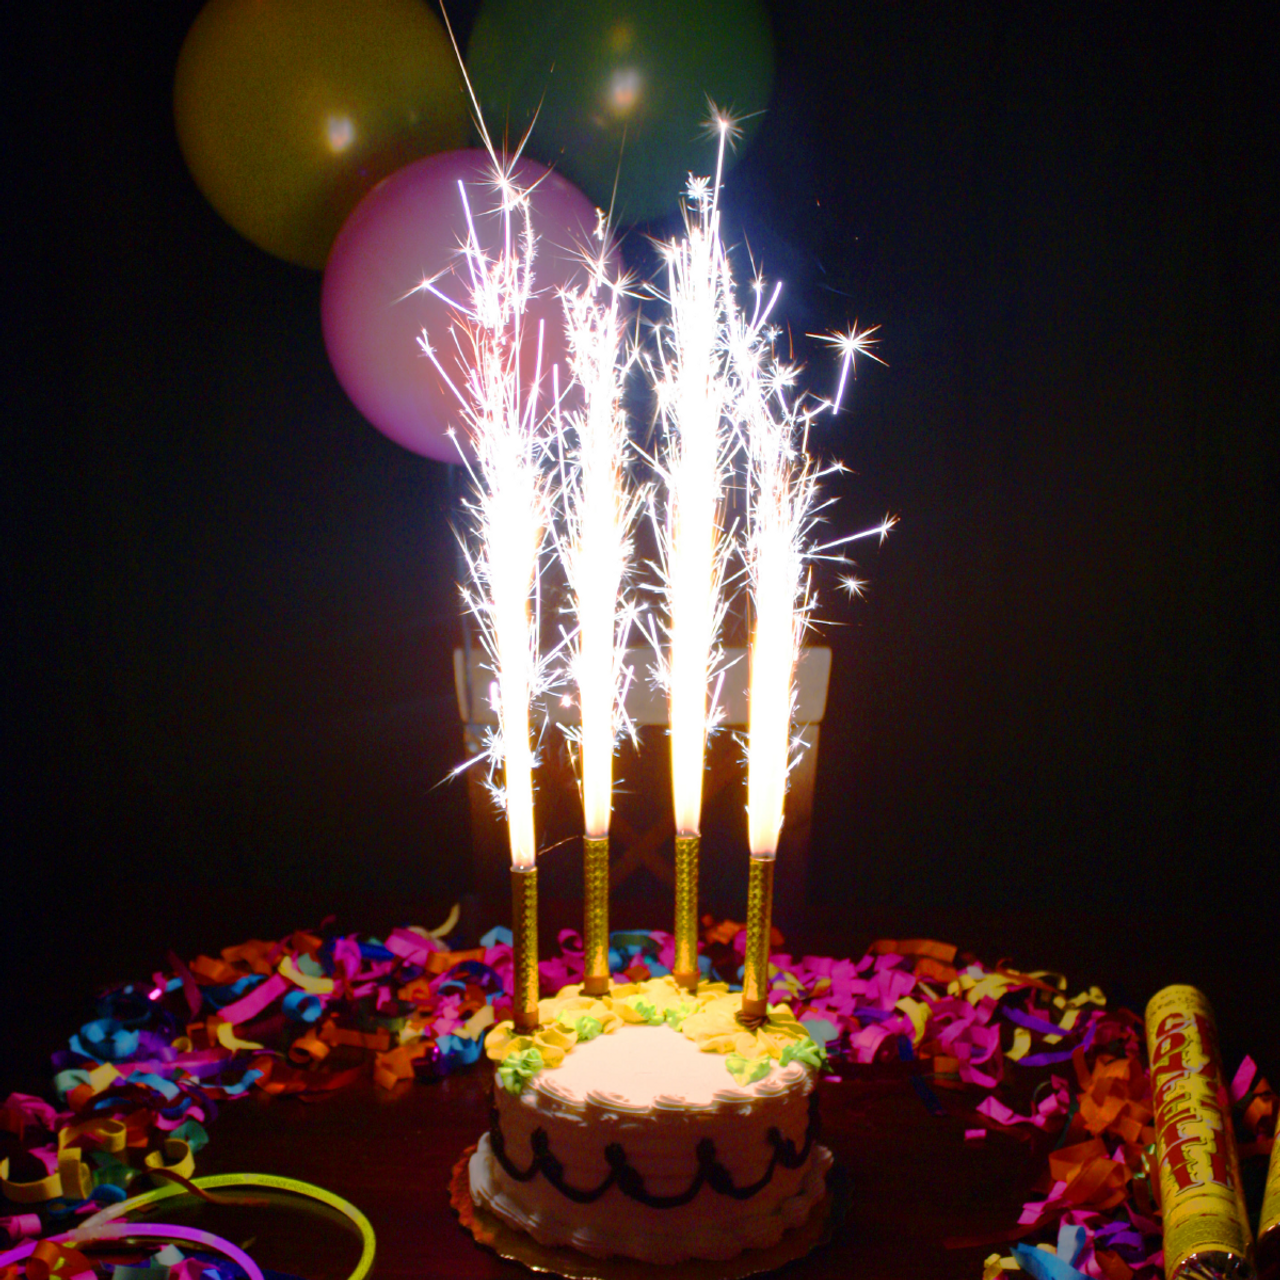 Cake Sparklers Sparkler Party Nightclub Supplies